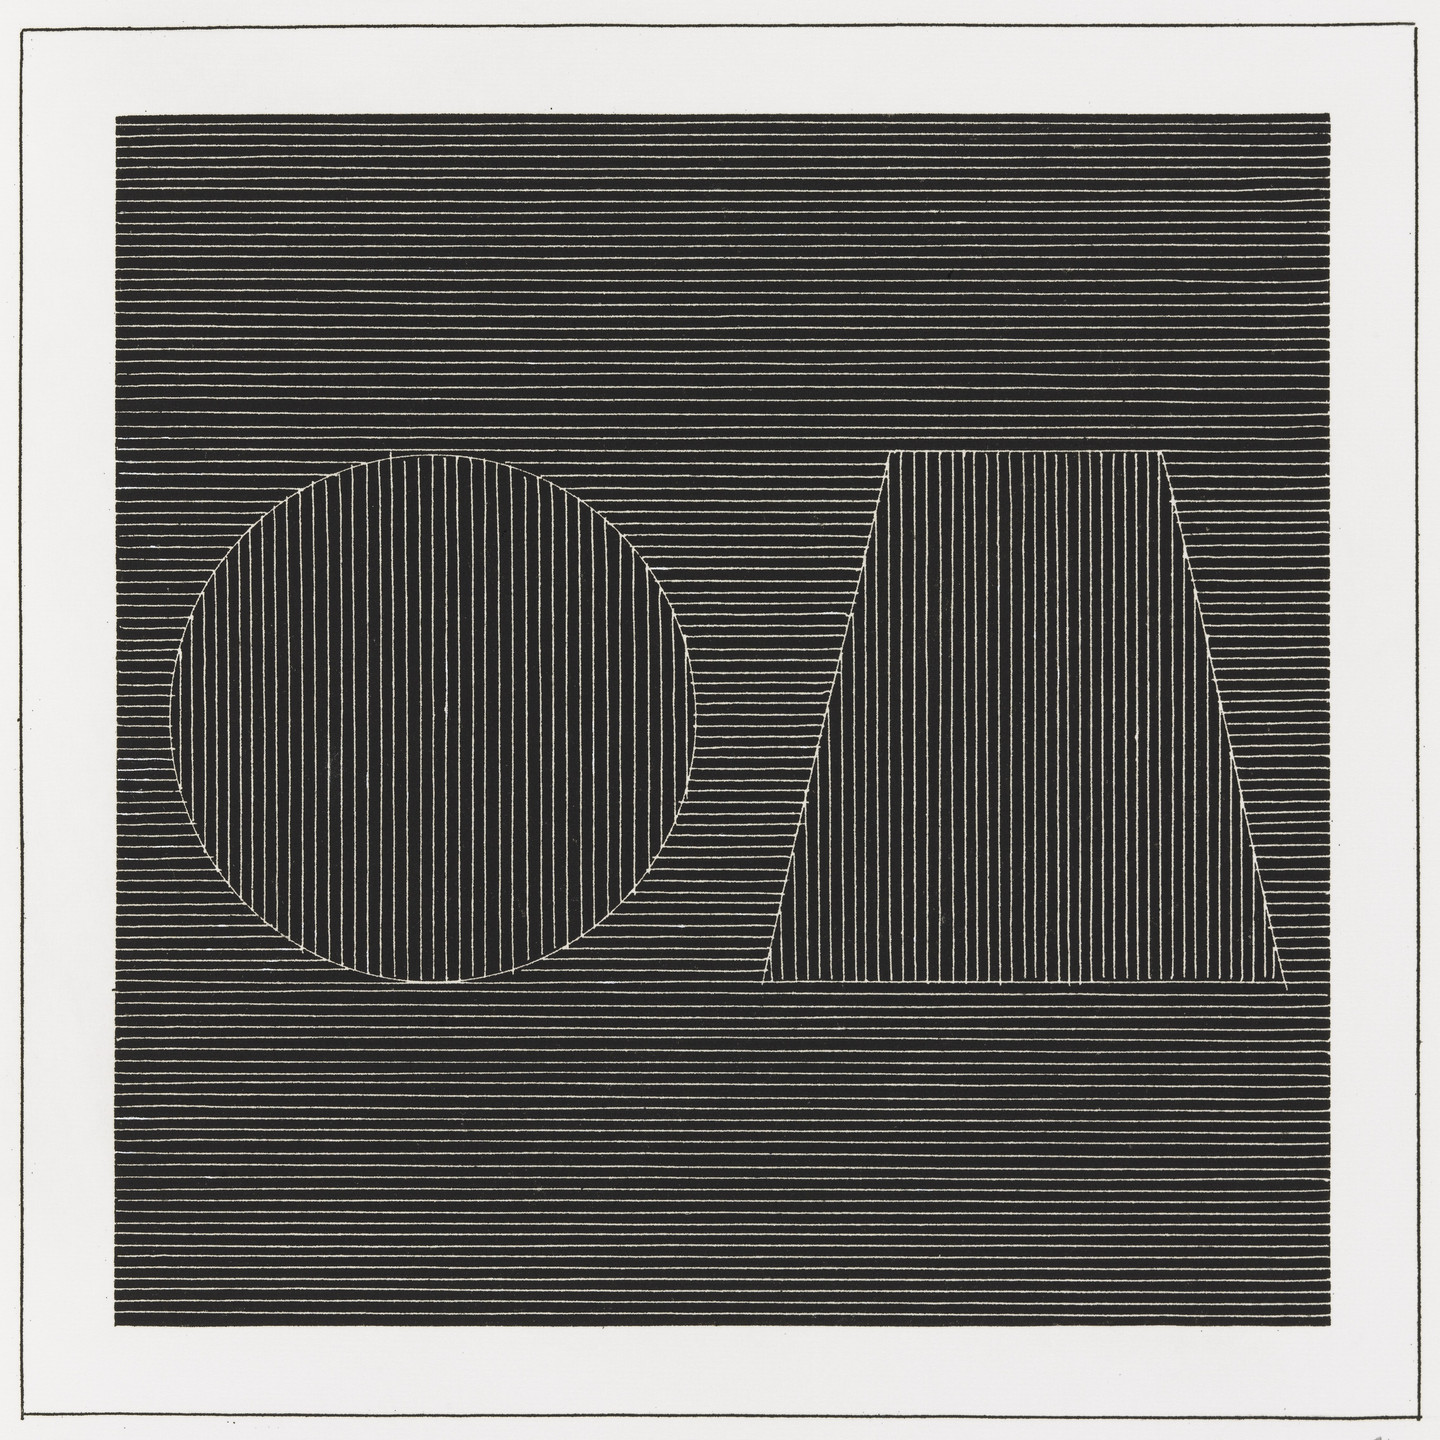 Sol LeWitt. Plate (folio 15) from Six Geometric Figures and All Their Combinations, Volume I. 1980